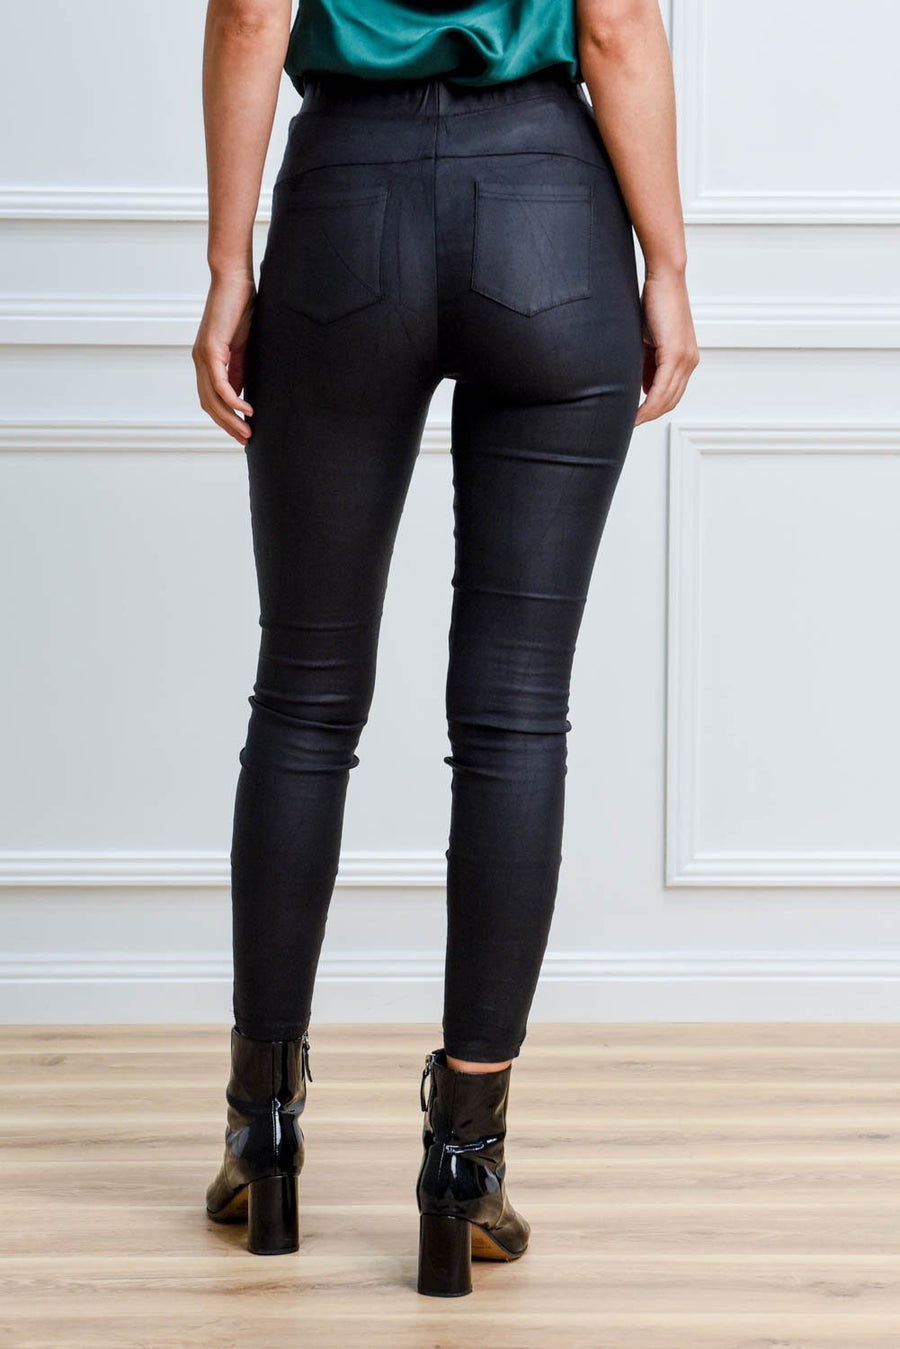 Estelle Leather Pant Pants Gray.Label